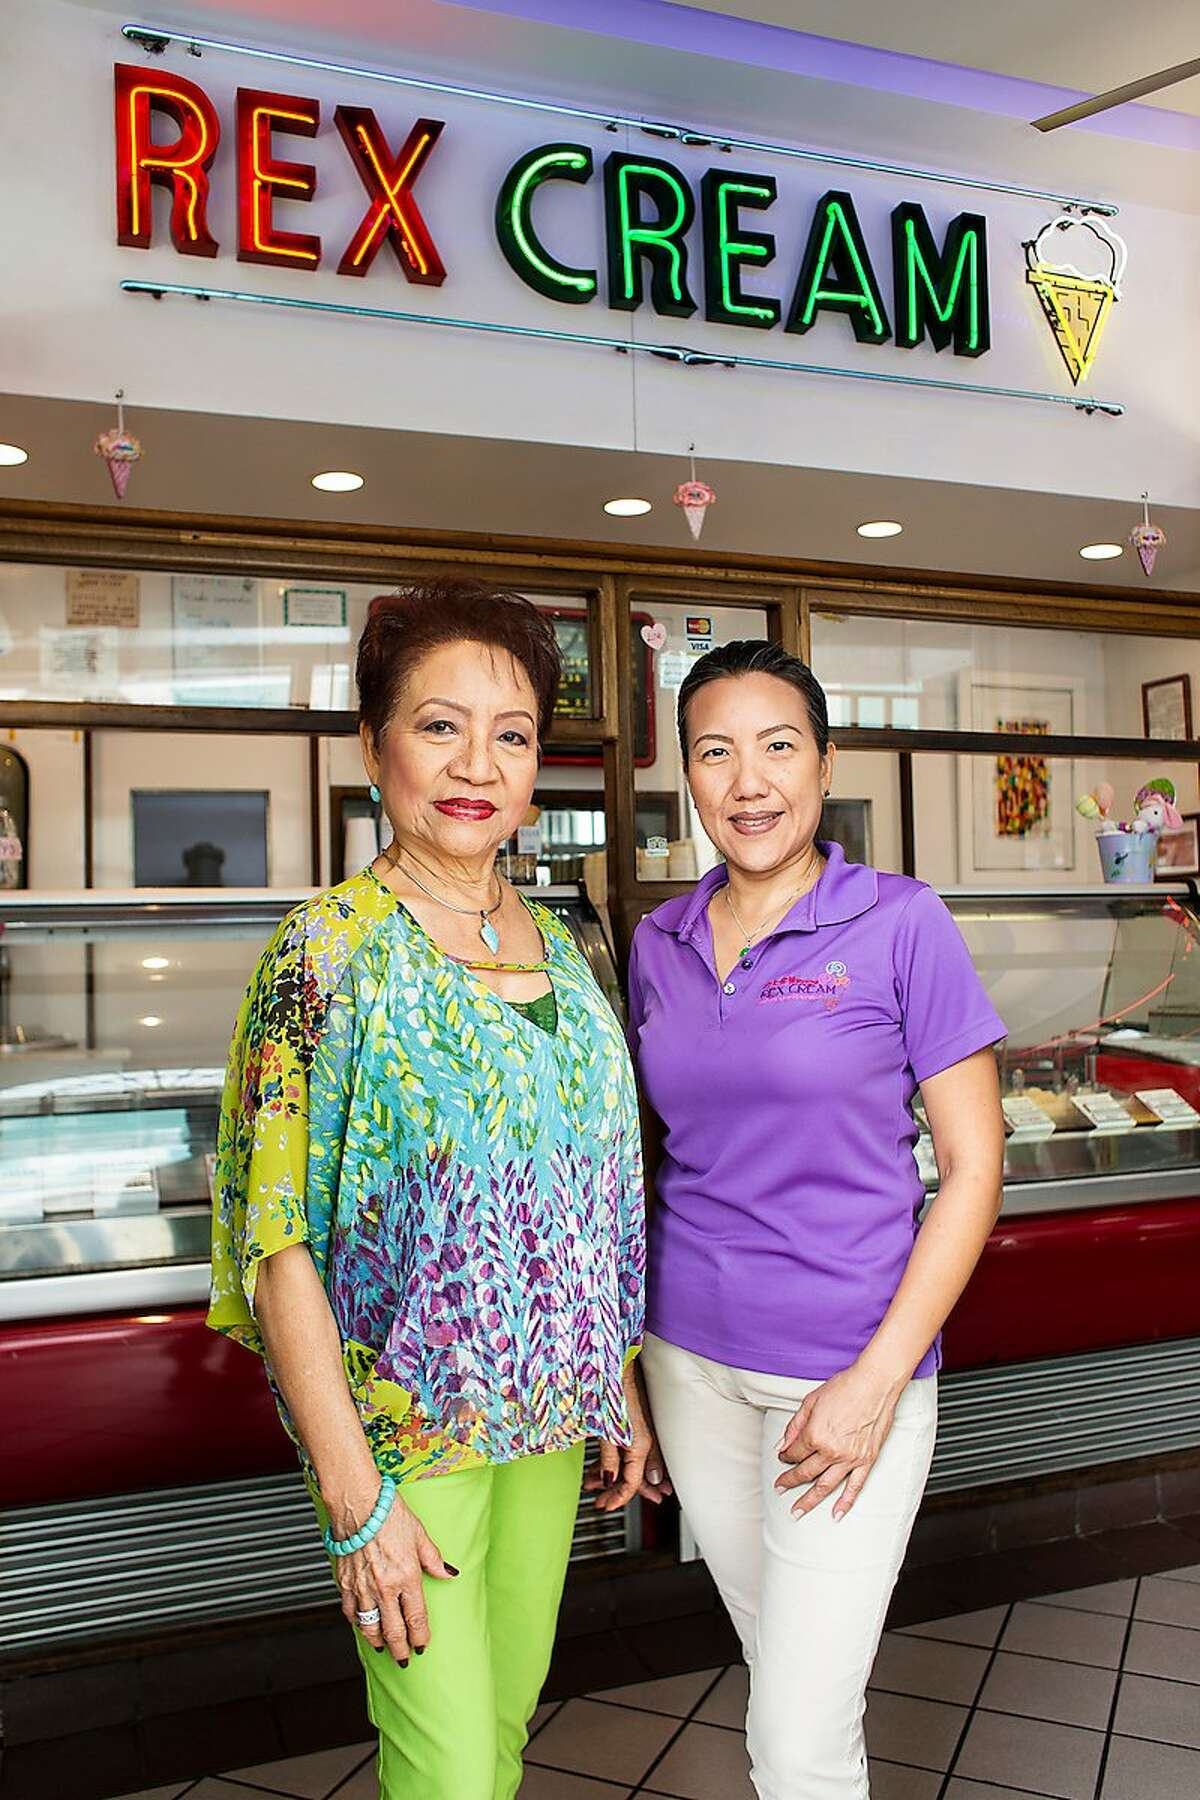 From left, Violeta Chang Louk, 79, poses for a portrait with her daughter Aileen Louk Chang, 47, at the Rex Cream store in Derkes Street in Guayama, P.R., on April 9, 2019. Louk inherited the Chinese ice cream business from her mother, a Chinese immigrant from Cuba. (Photo by Erika P. Rodriguez)